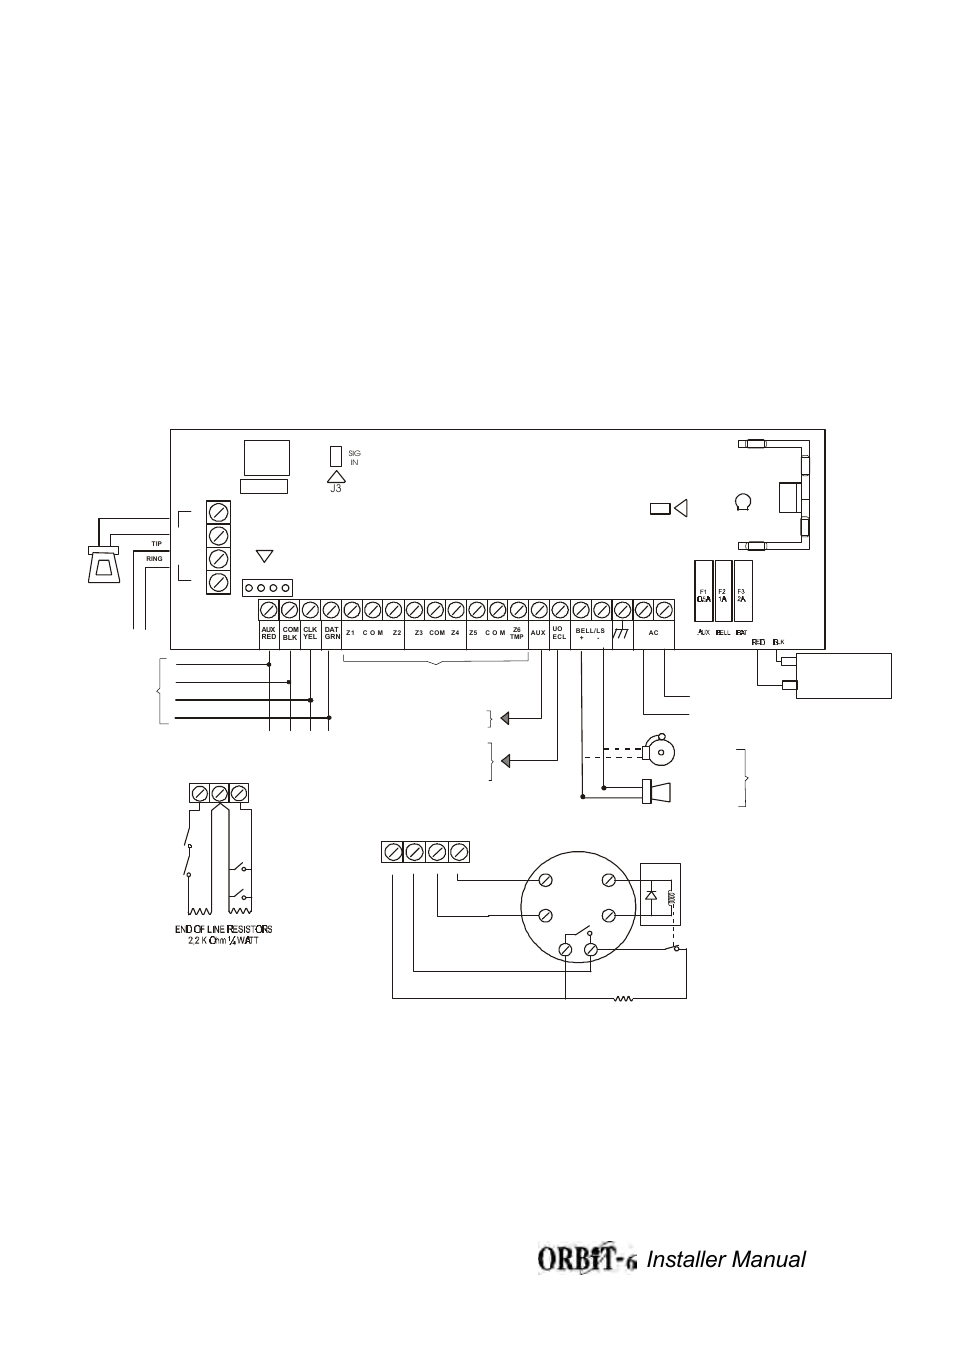 hight resolution of orbit 6 wiring diagram figure 1a installer manual 32 orbit manufacturing rokonet orbit